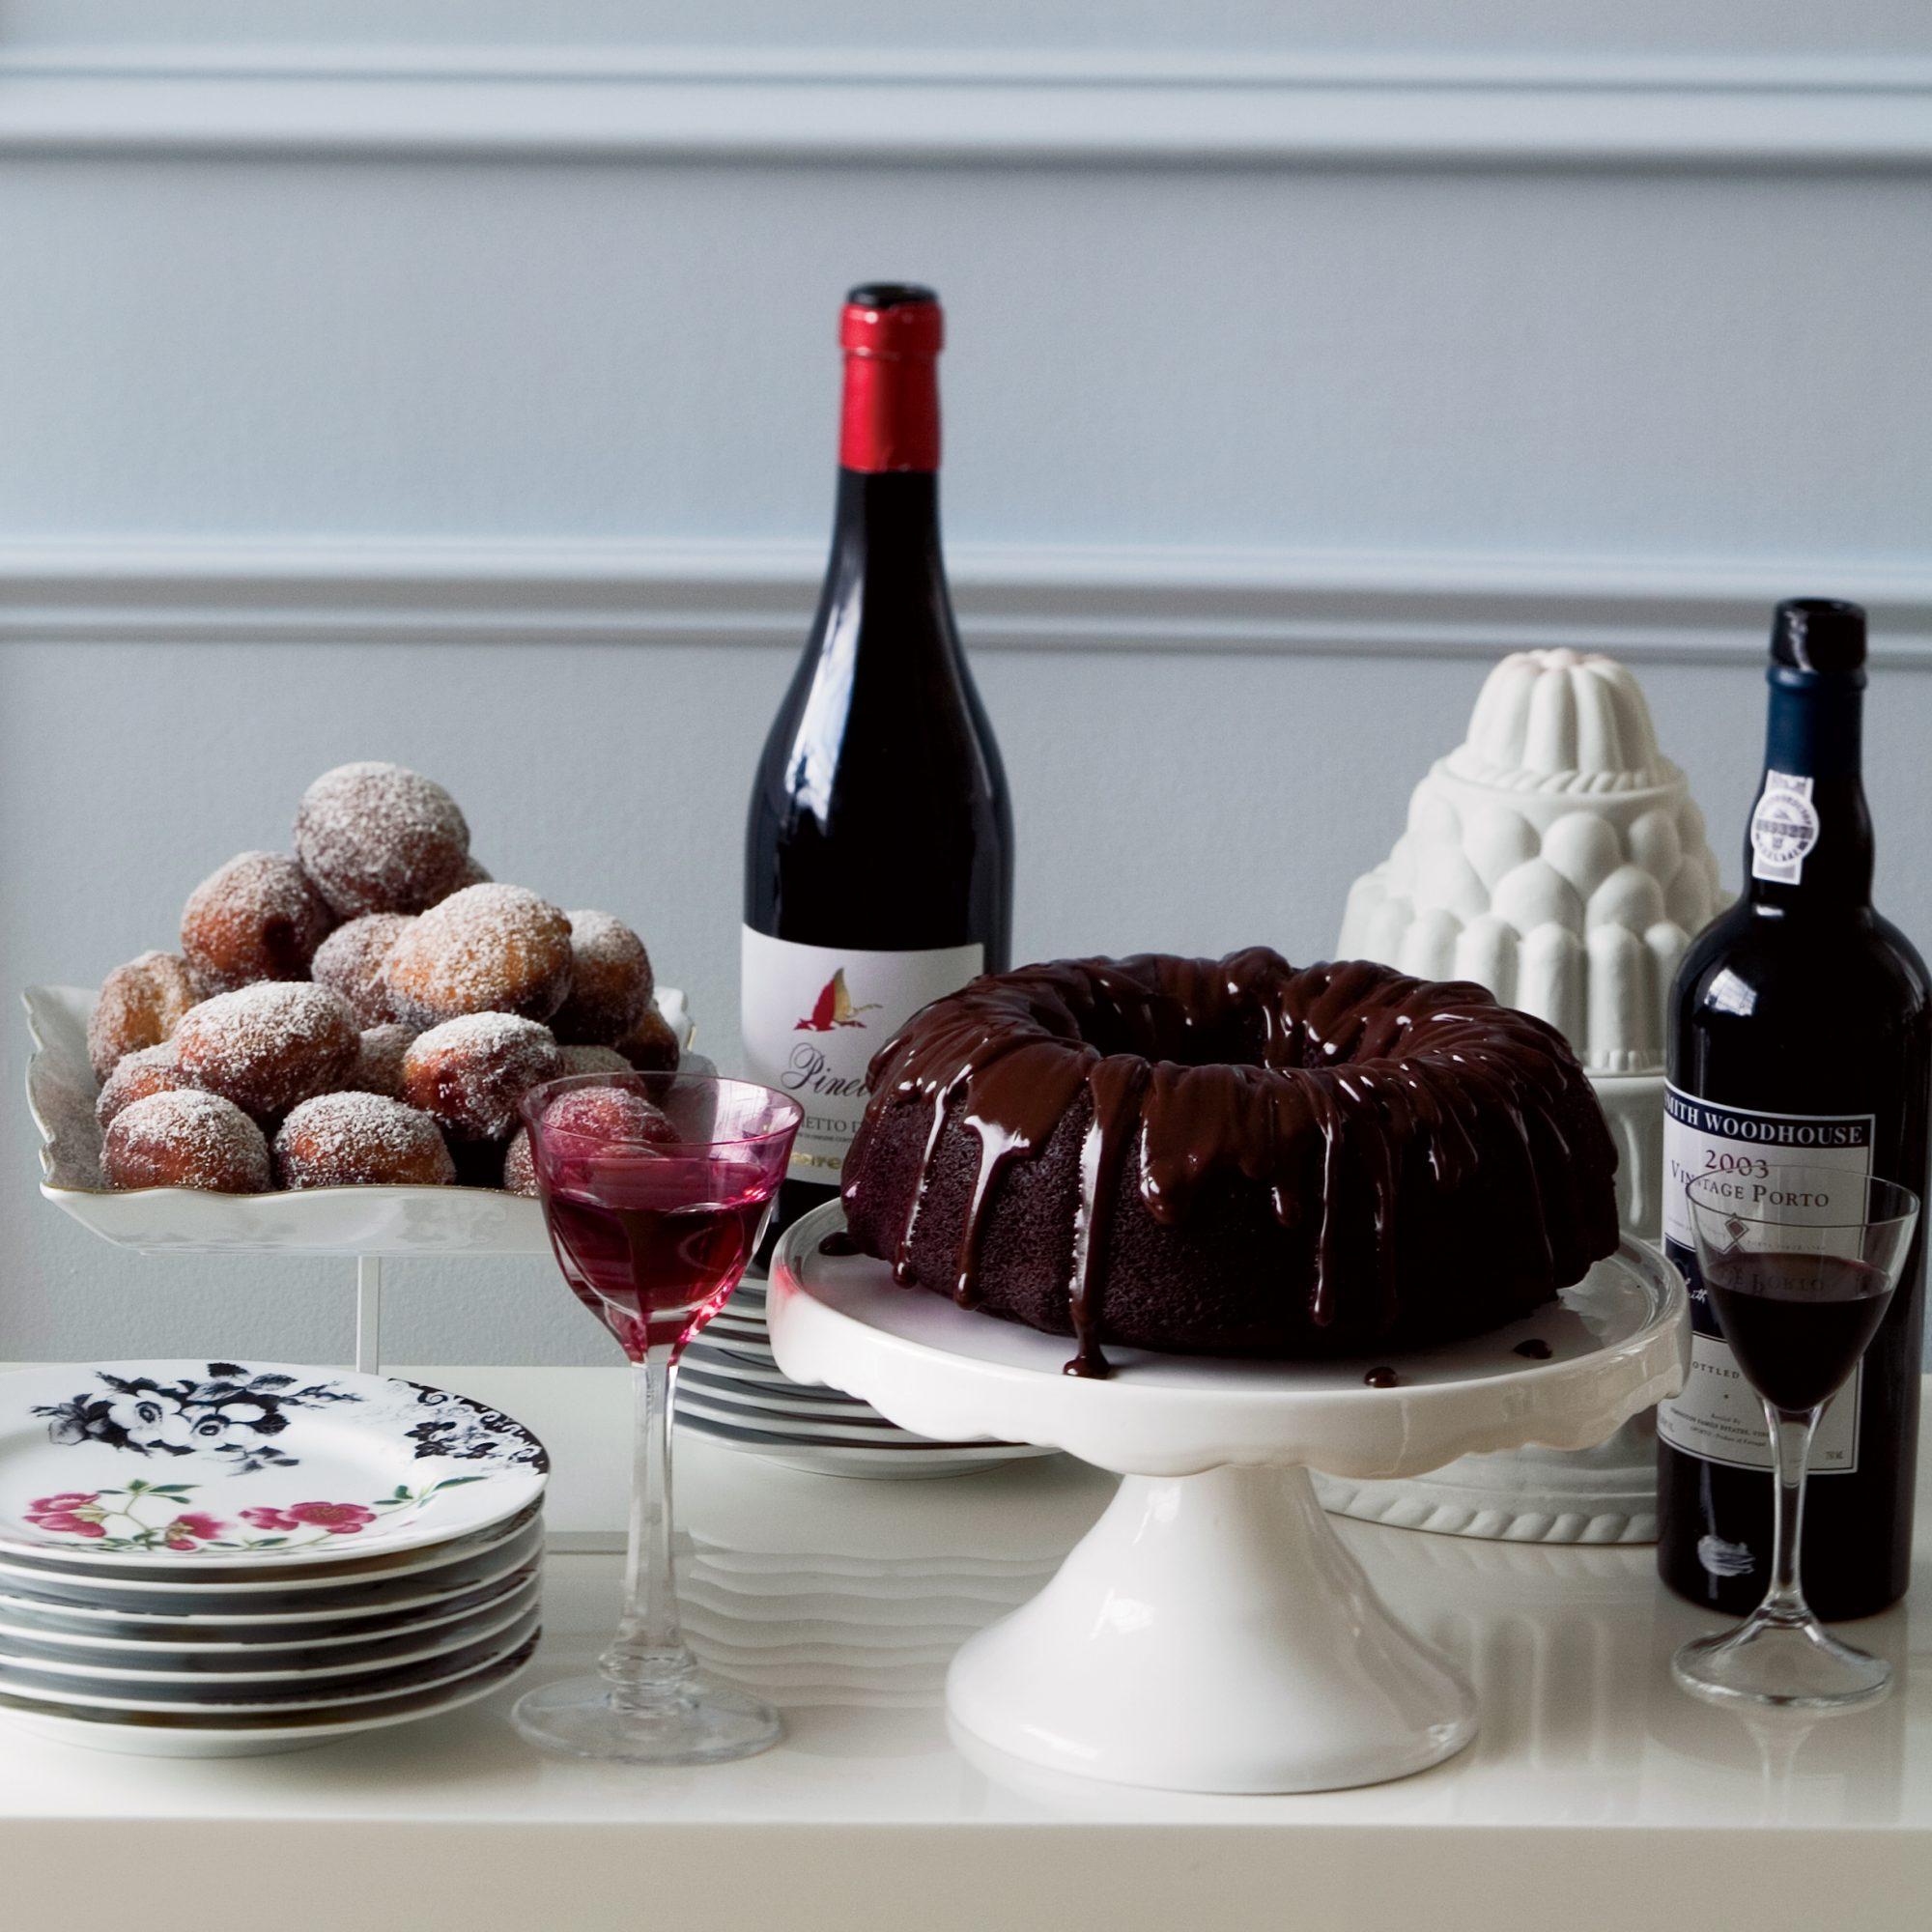 Decadent Desserts and The Wines That Love Them